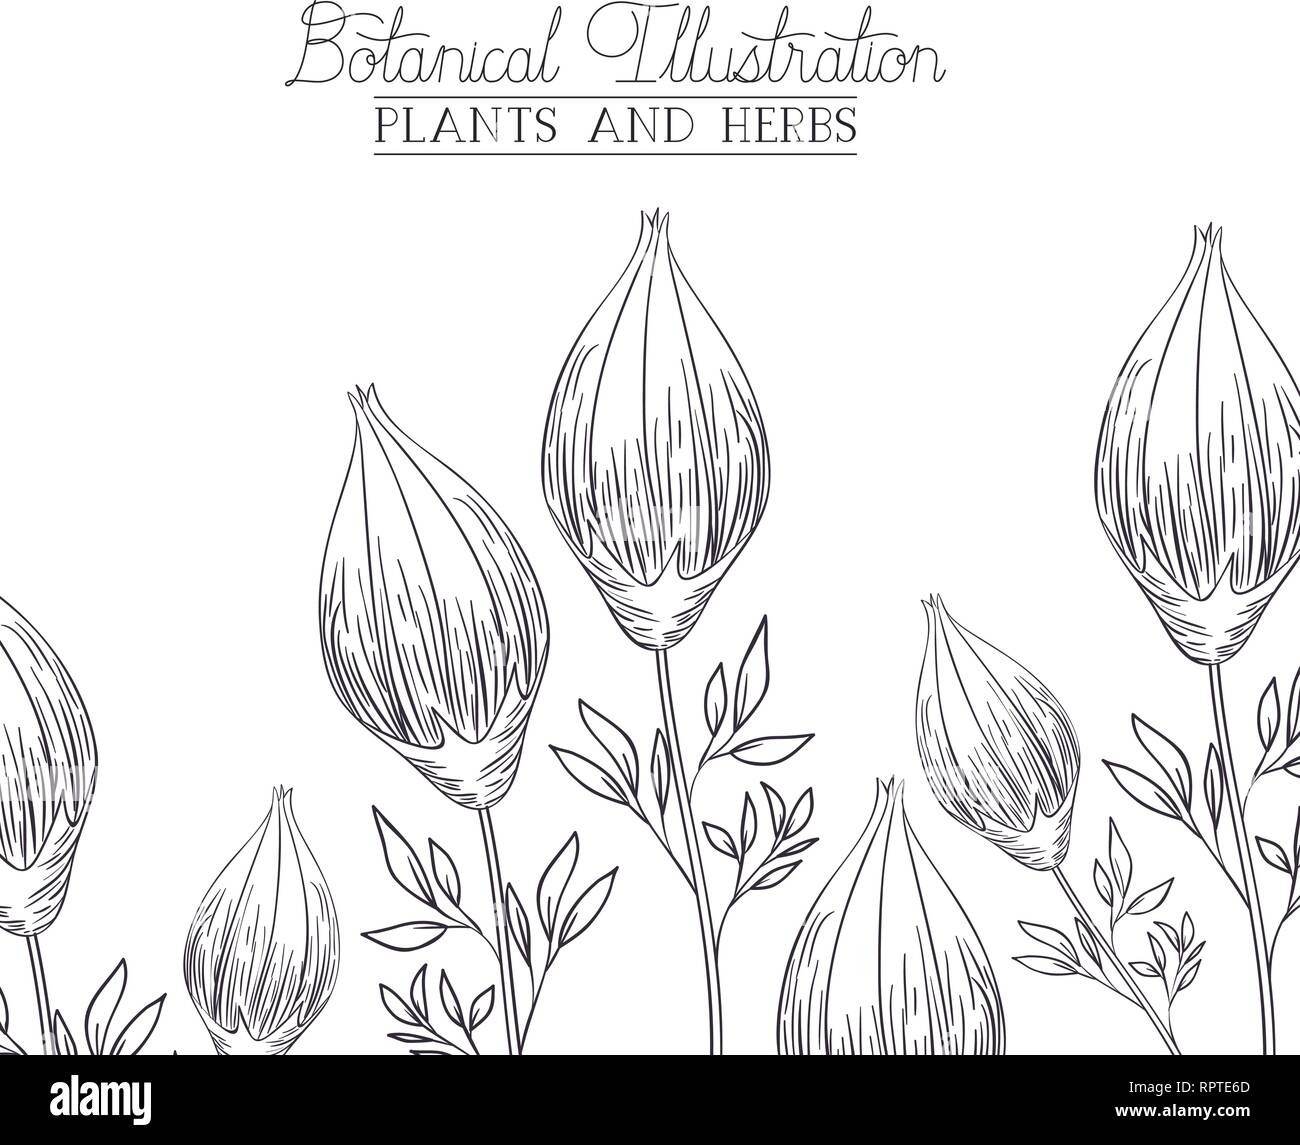 botanical illustration label with plants and herbs - Stock Vector